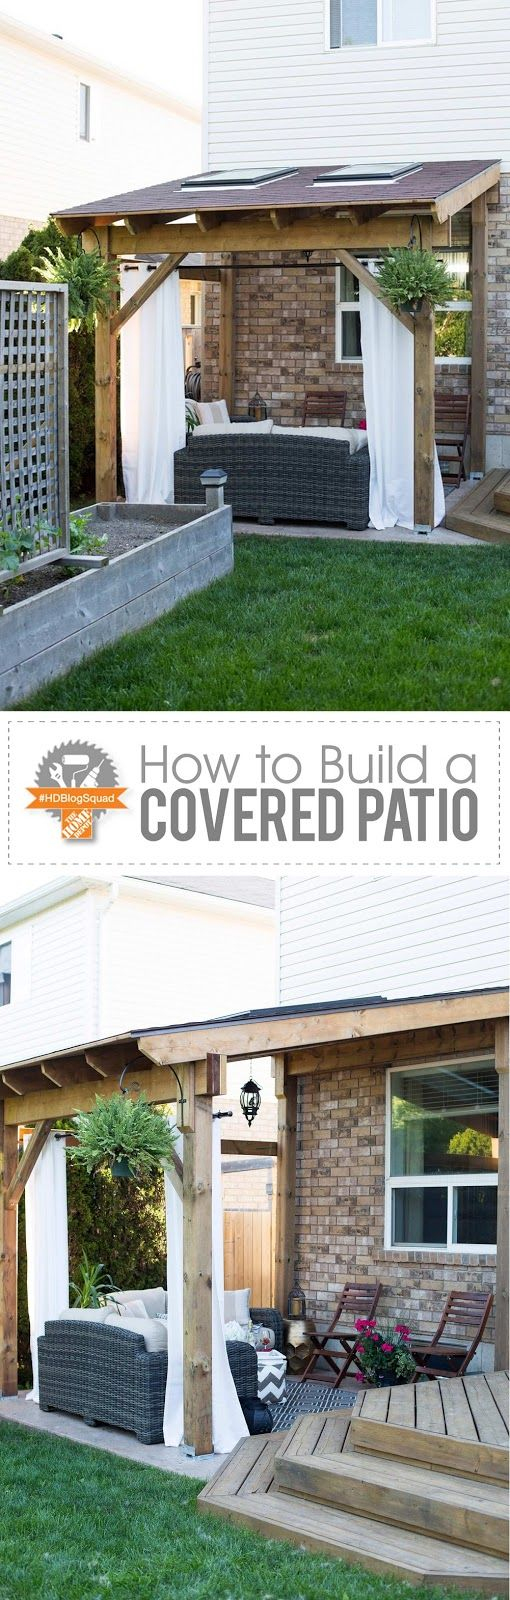 Build a Covered Patio.